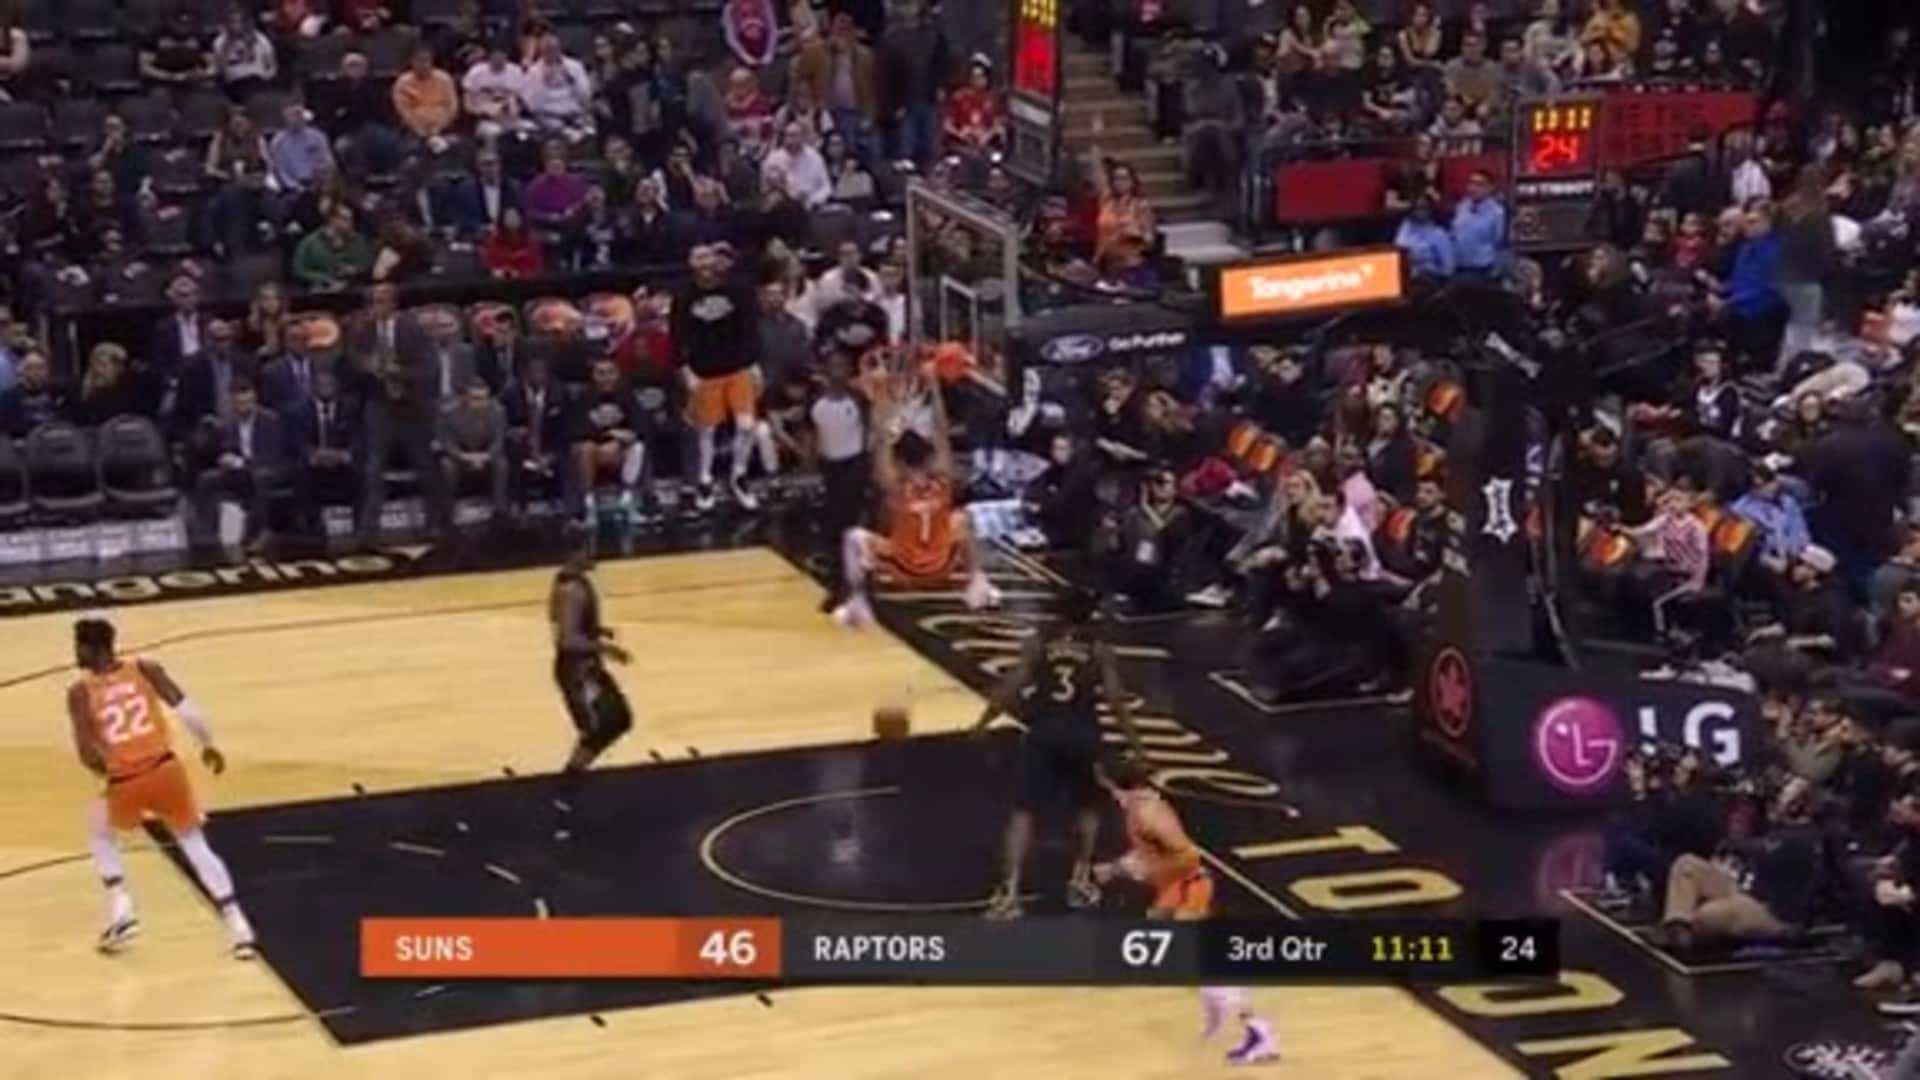 Rubio and Booker Finish a Fast Break